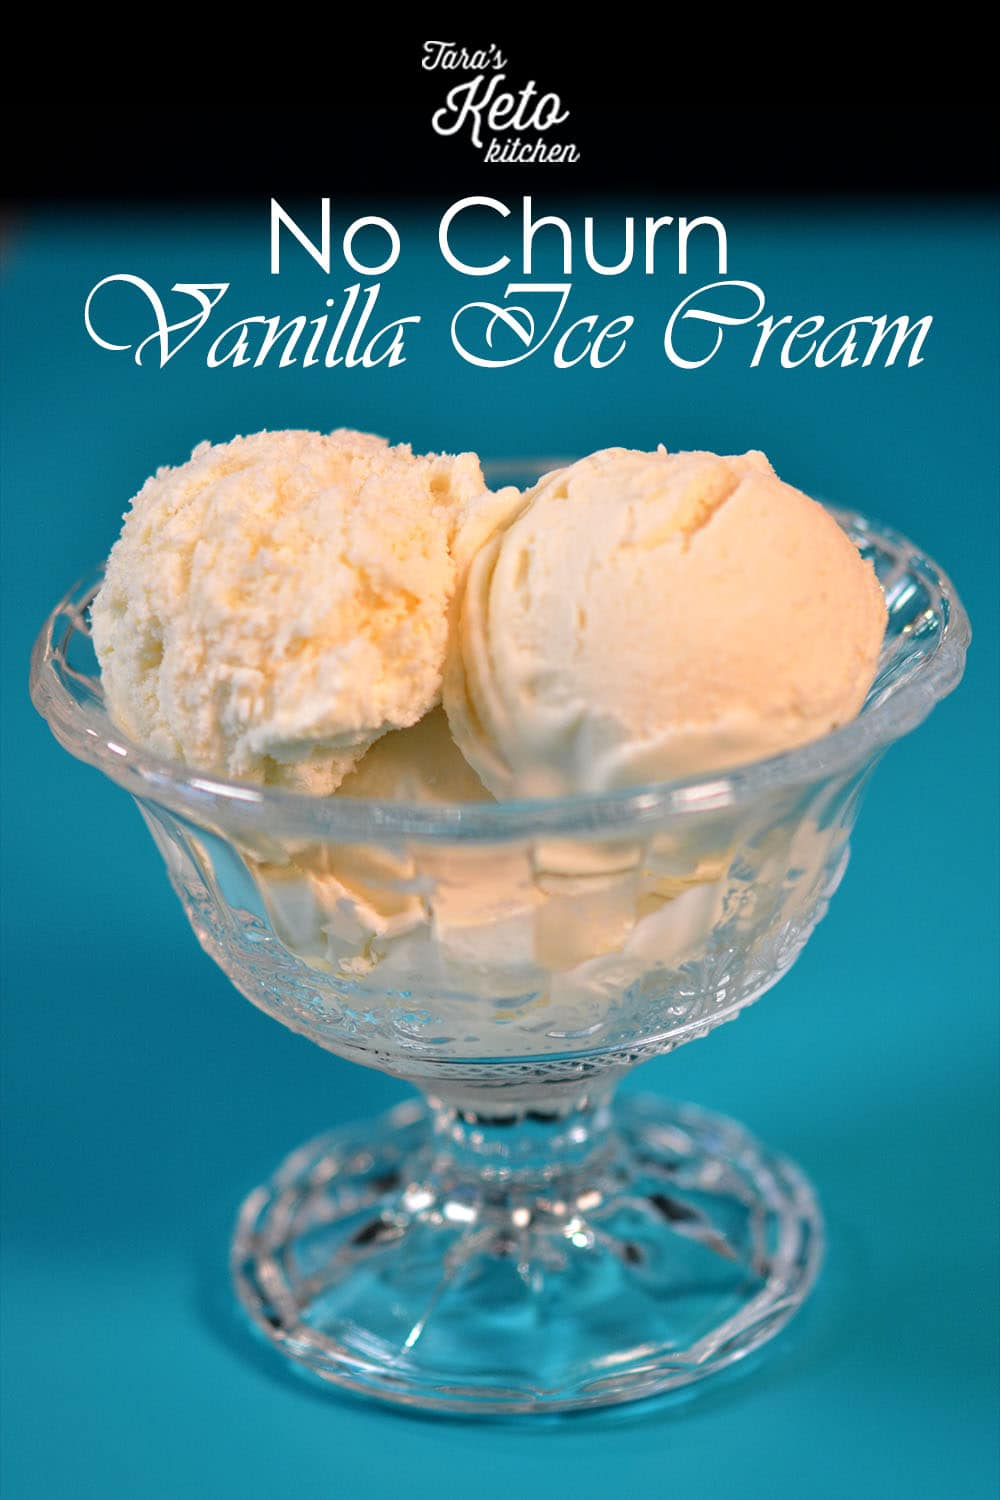 Keto No Churn Vanilla Ice Cream in a glass ice cream dish